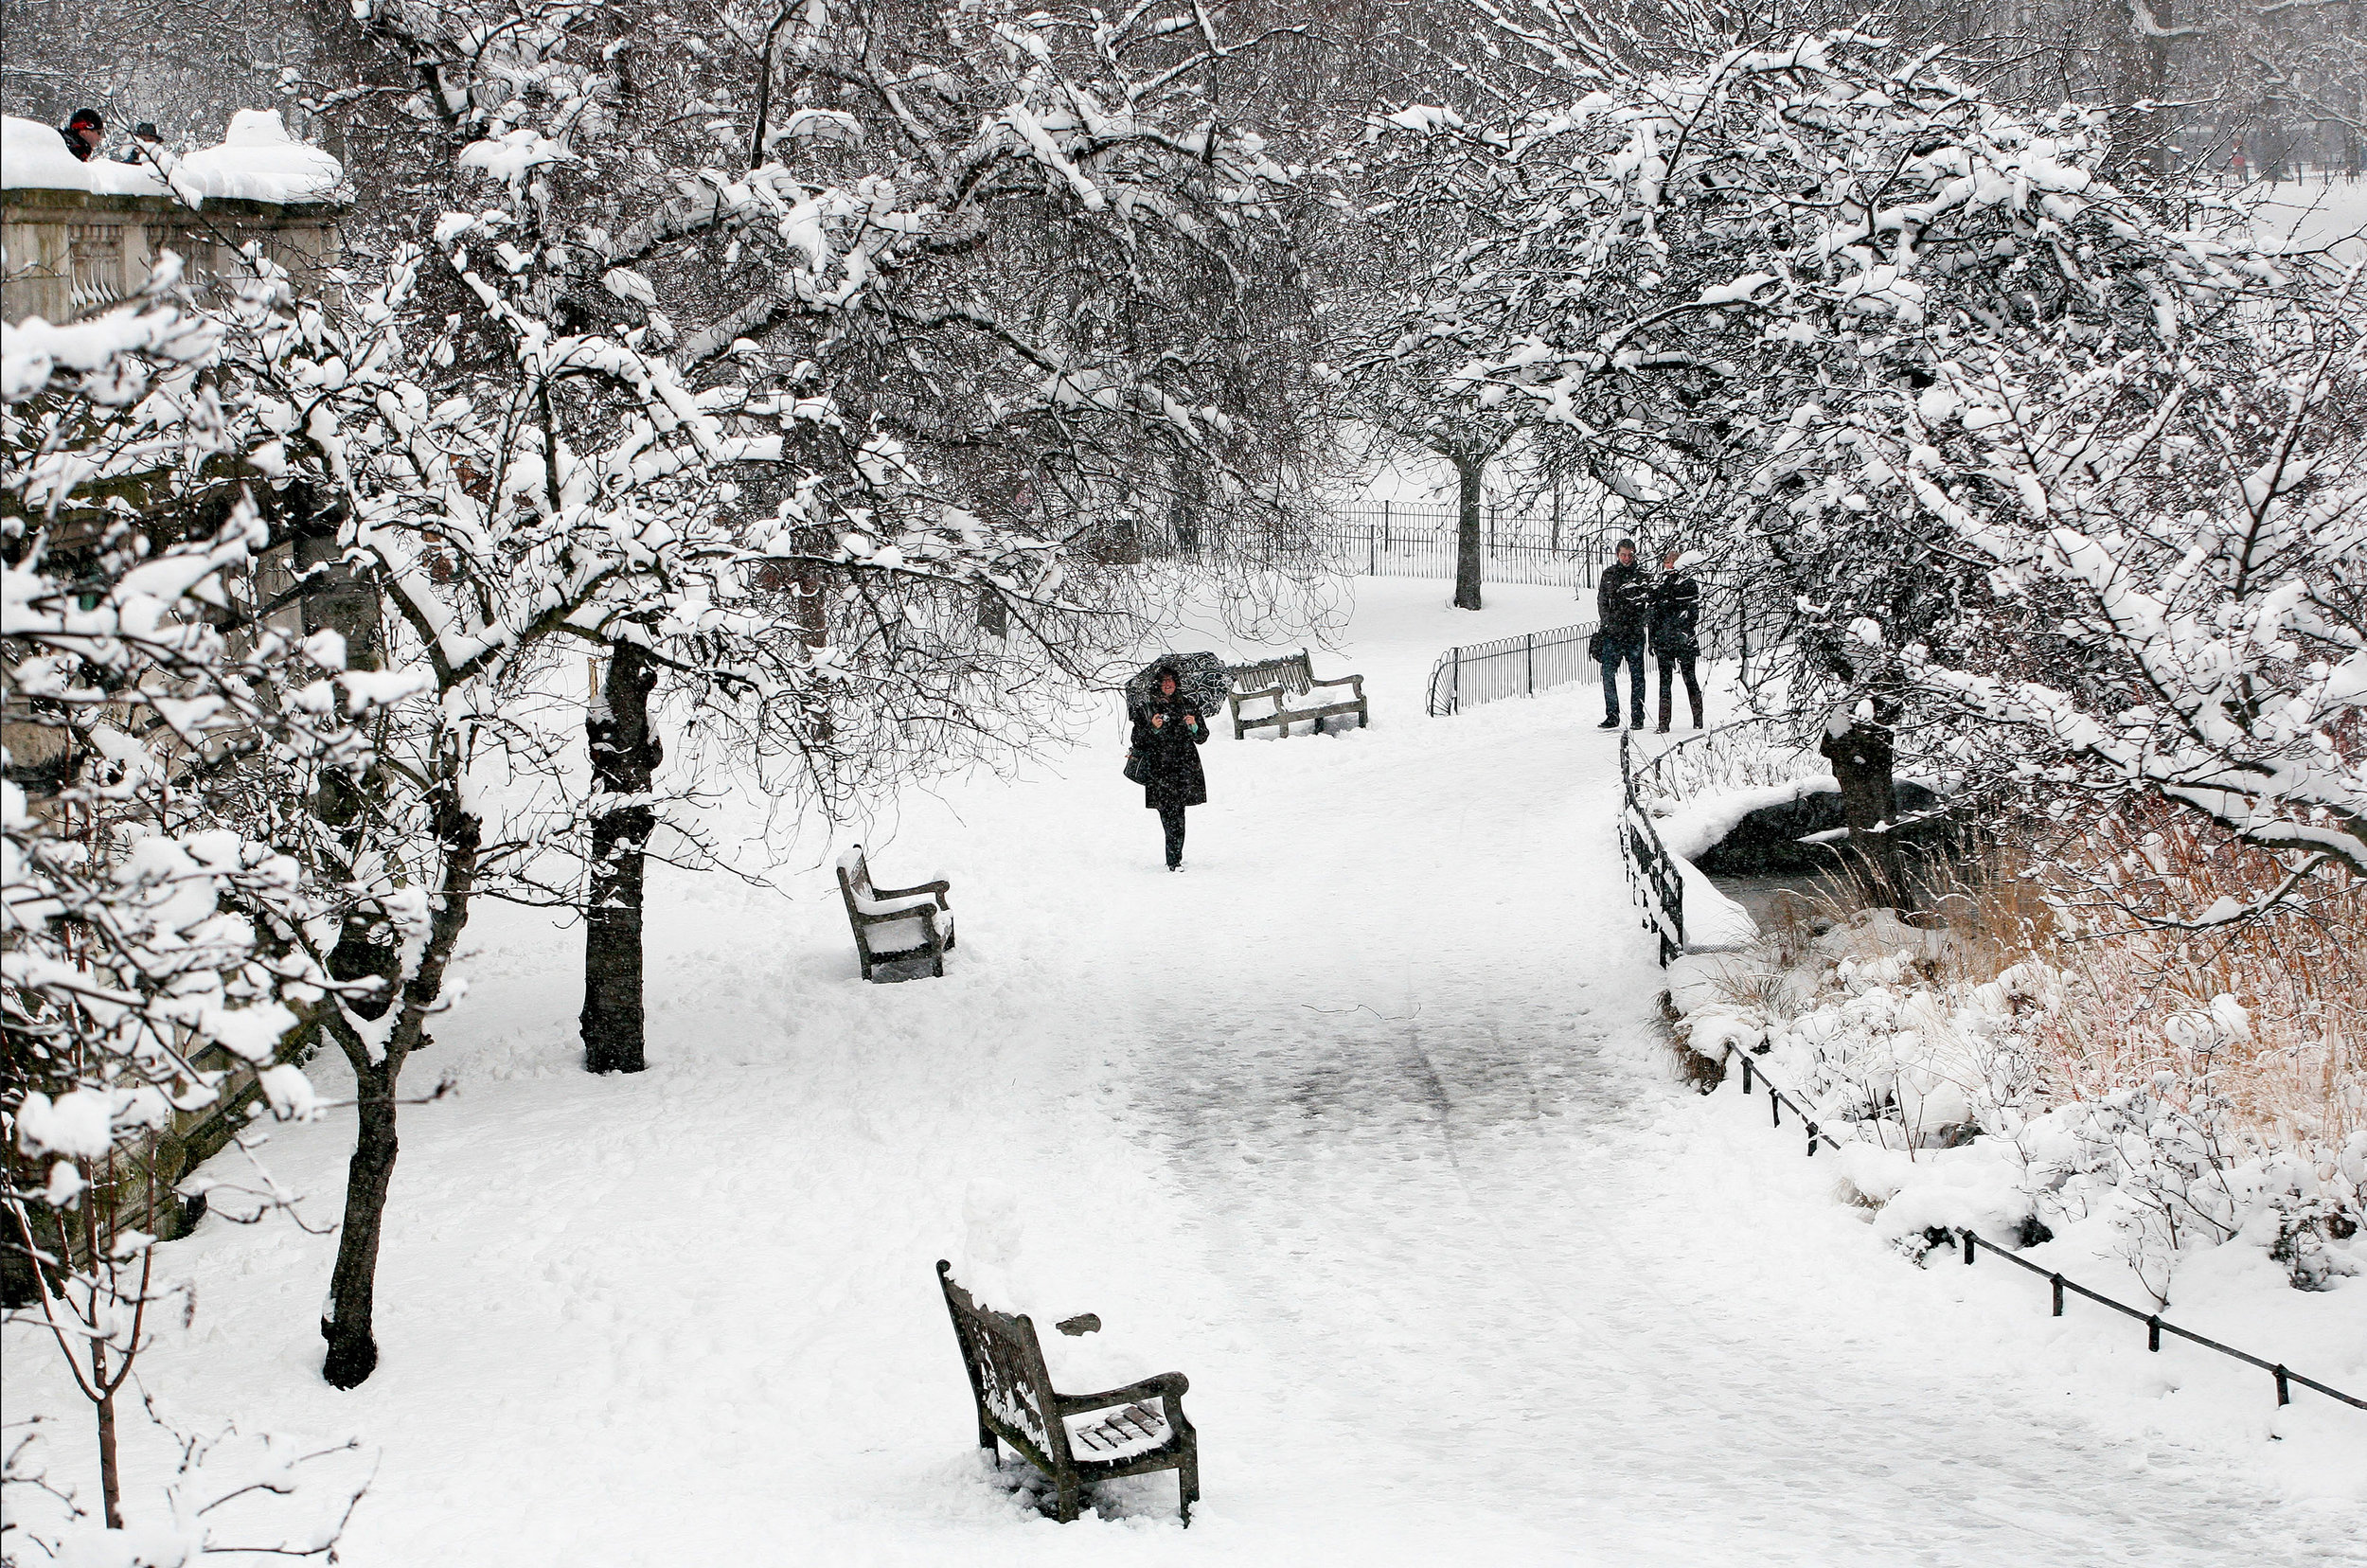 Snow in London, February 2009 - Katie Collins/Press Association